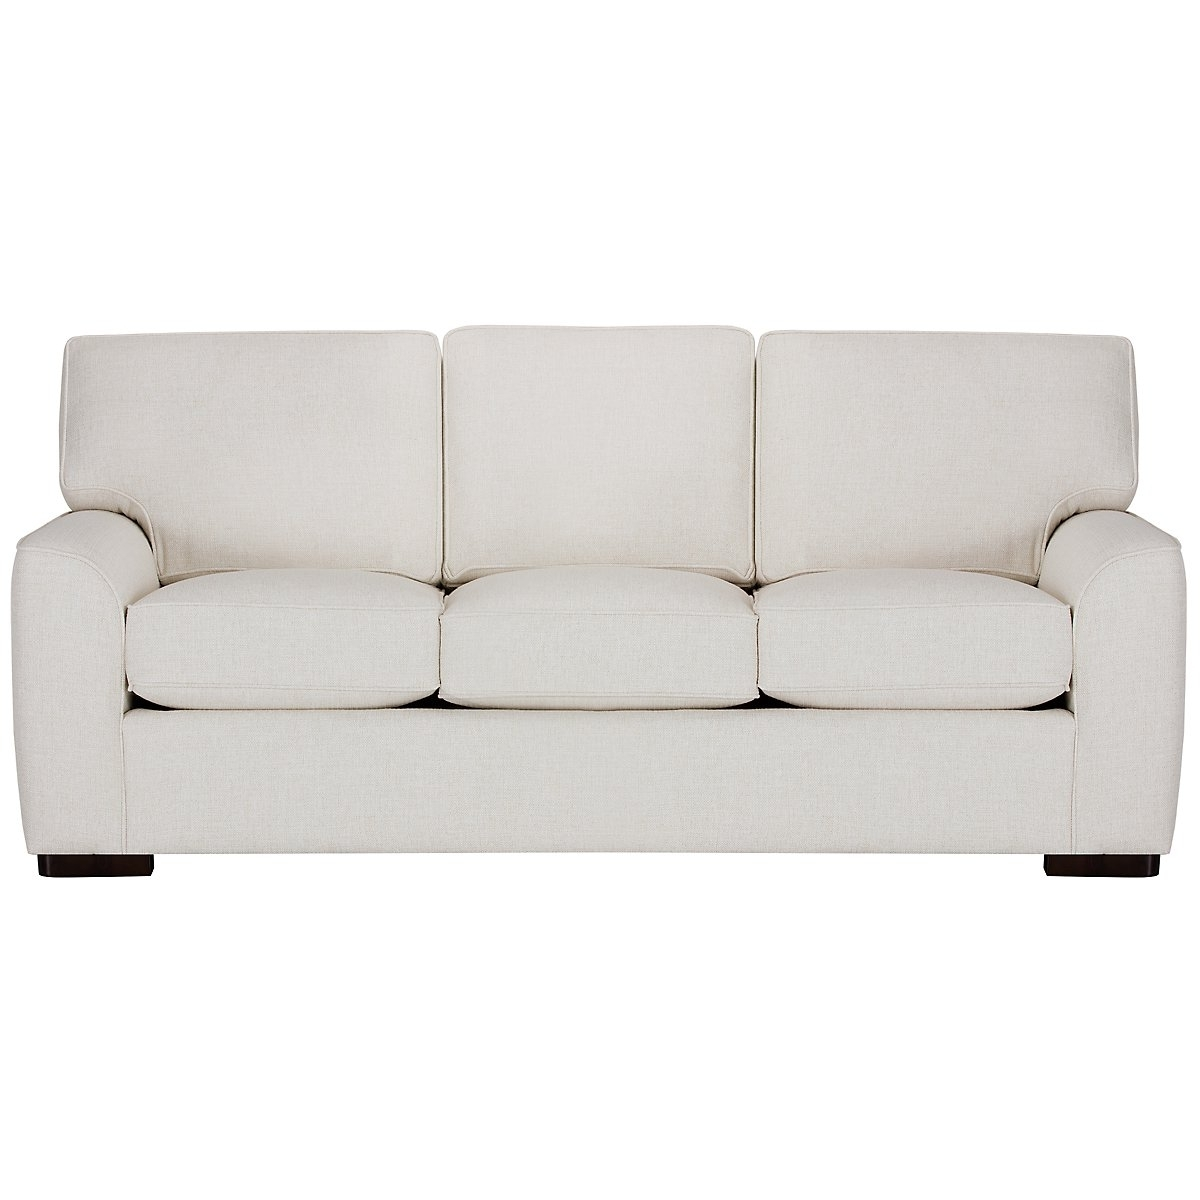 Most Current Lovely White Sofa Chair 22 With Additional Sofa Room Ideas With Regarding White Sofa Chairs (View 16 of 20)